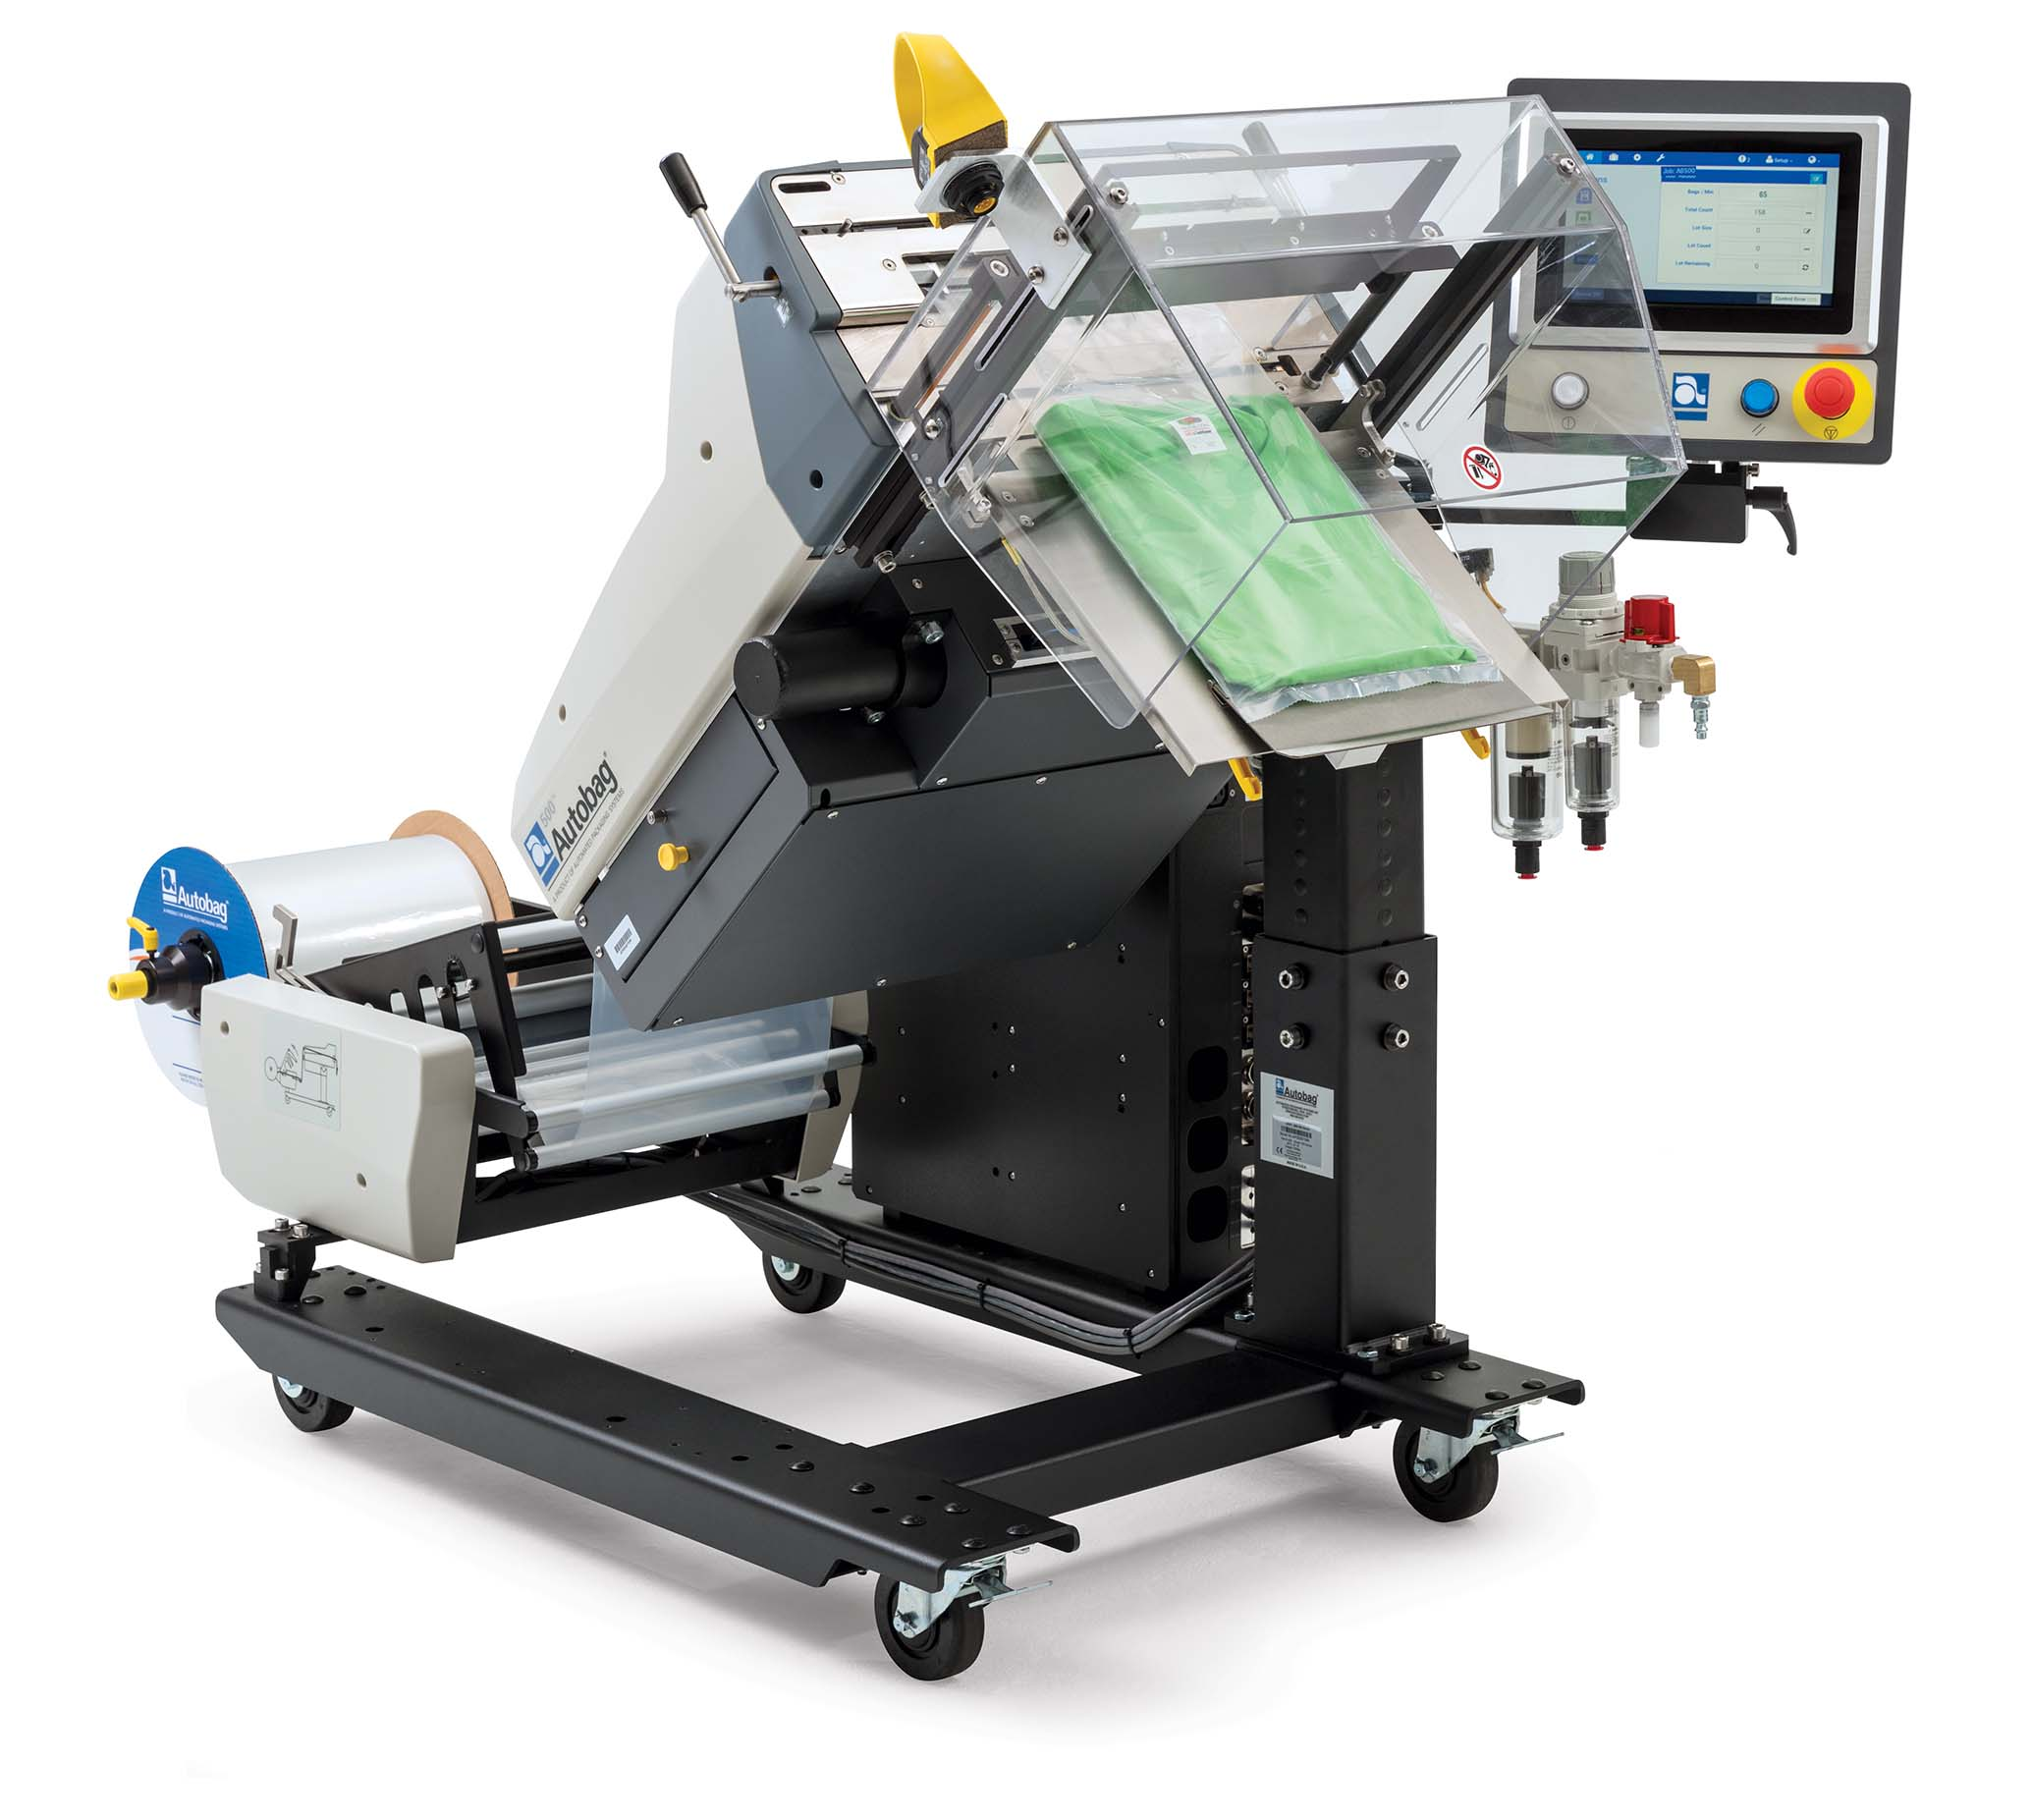 Autobag 500 Bagging System 45 degree tilt with t-shirt